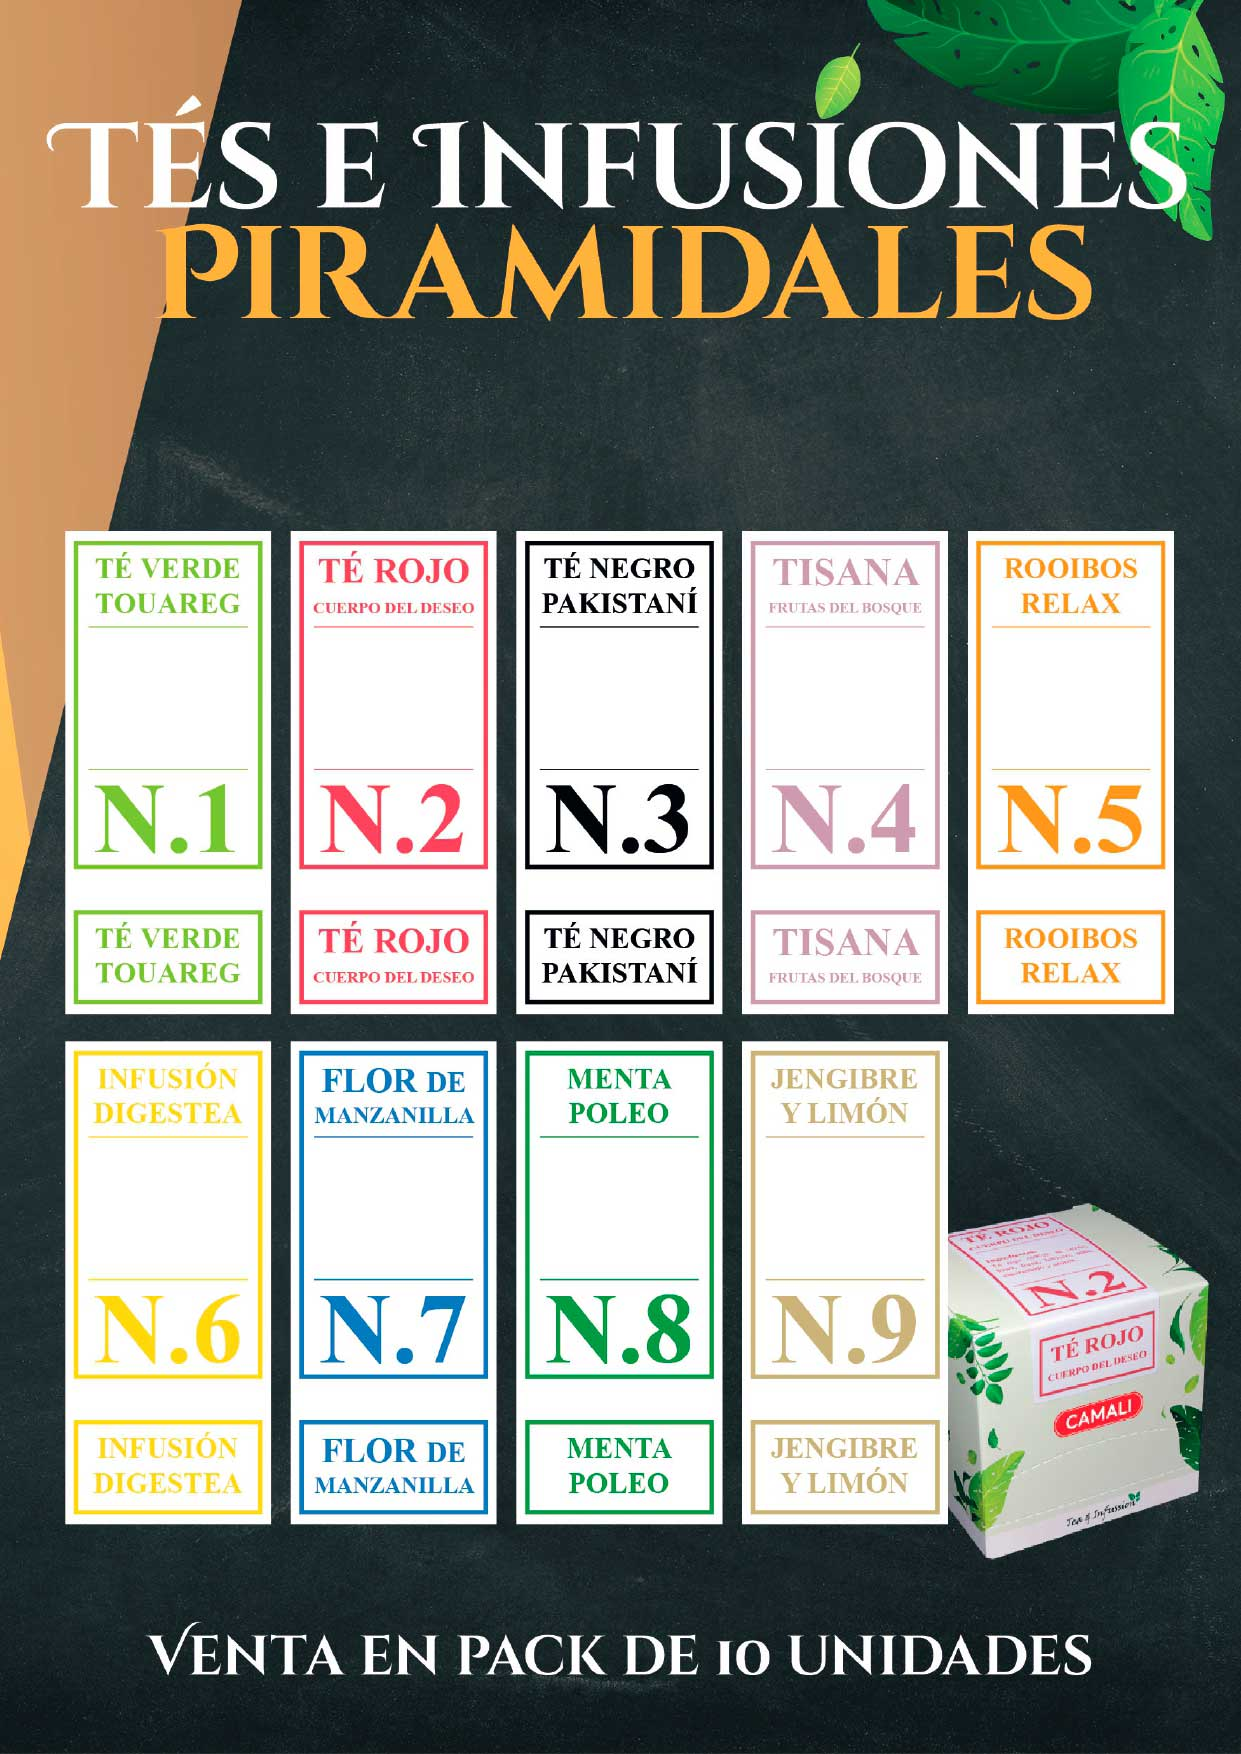 gama-productos-cafes-camali-tes-e-infusiones.jpg